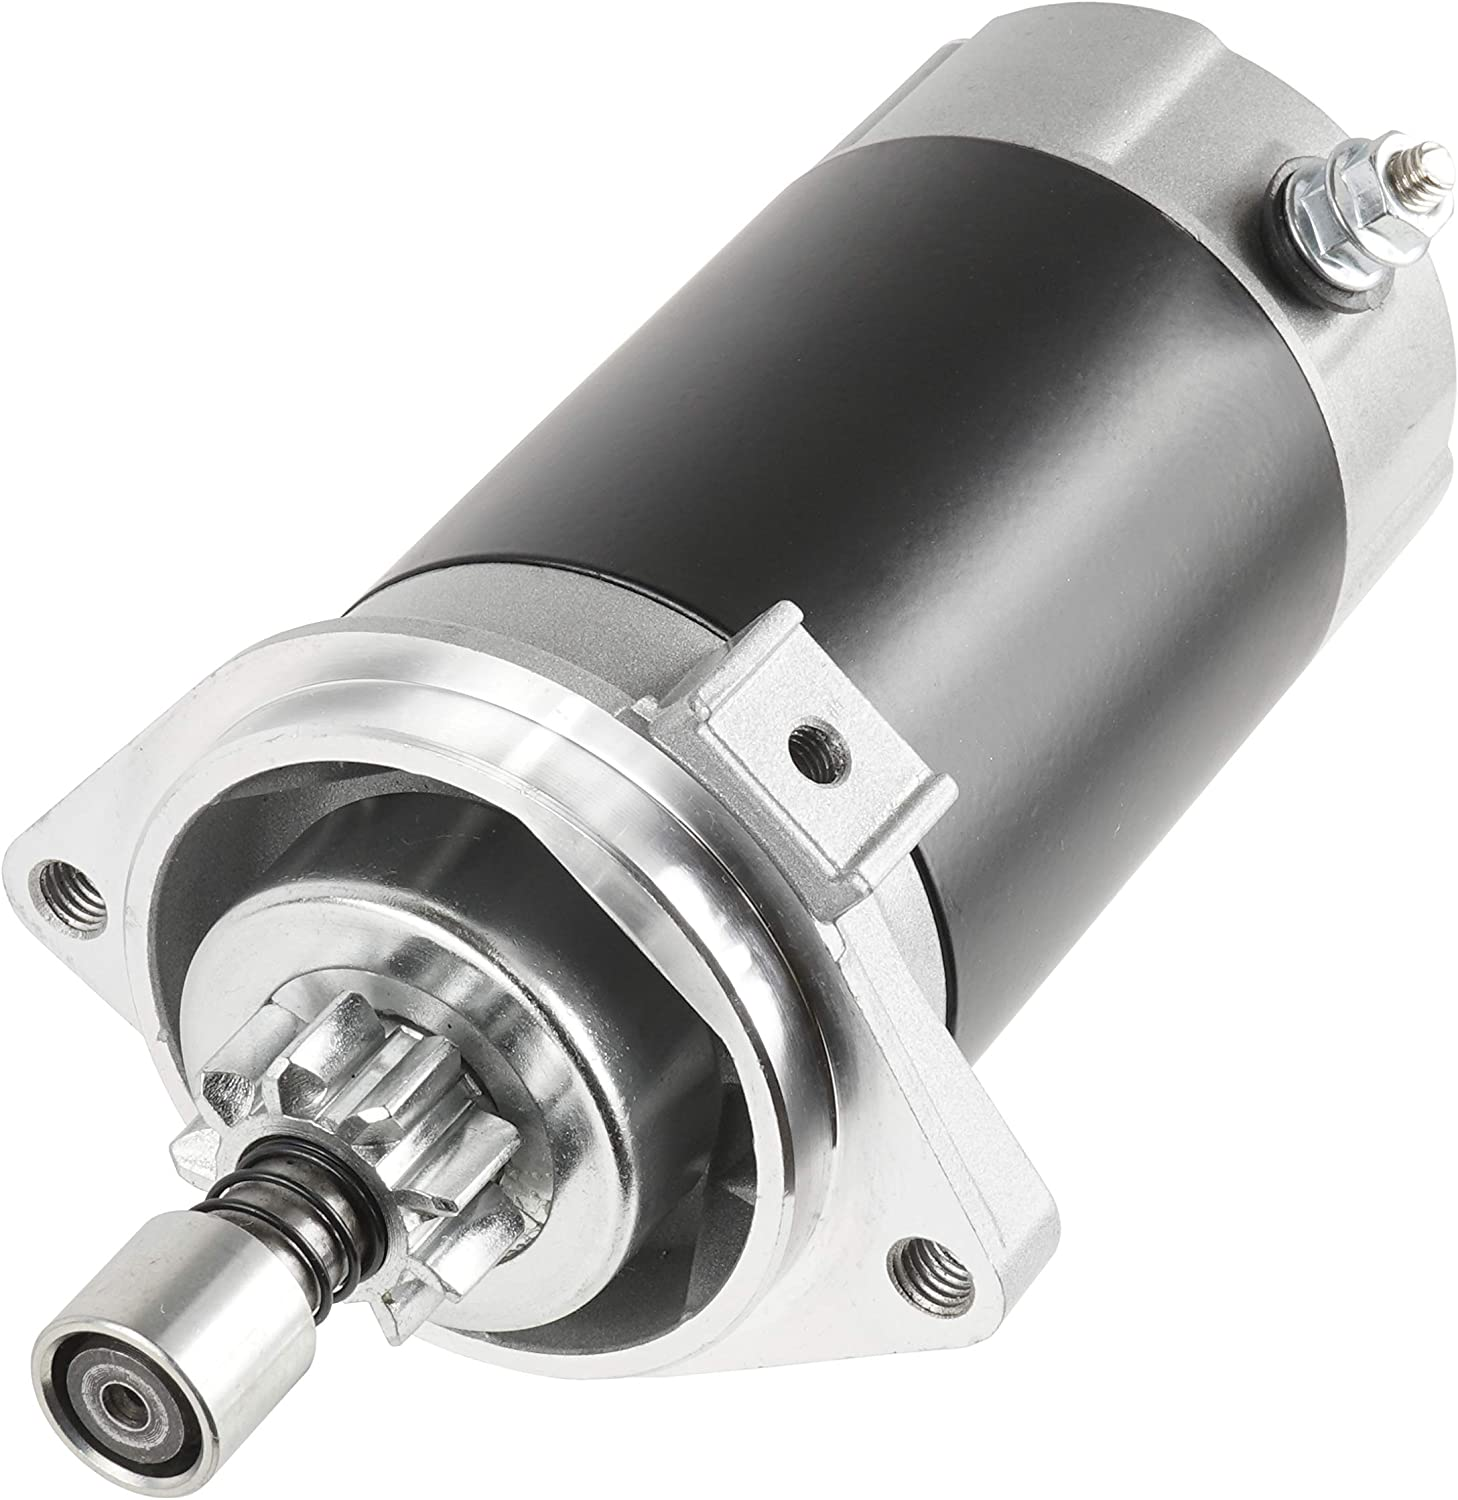 Caltric compatible with Starter Mercury Outboard 15 15Hp 20 20Hp 4-Stroke 2009 2010 2011 2012-2014